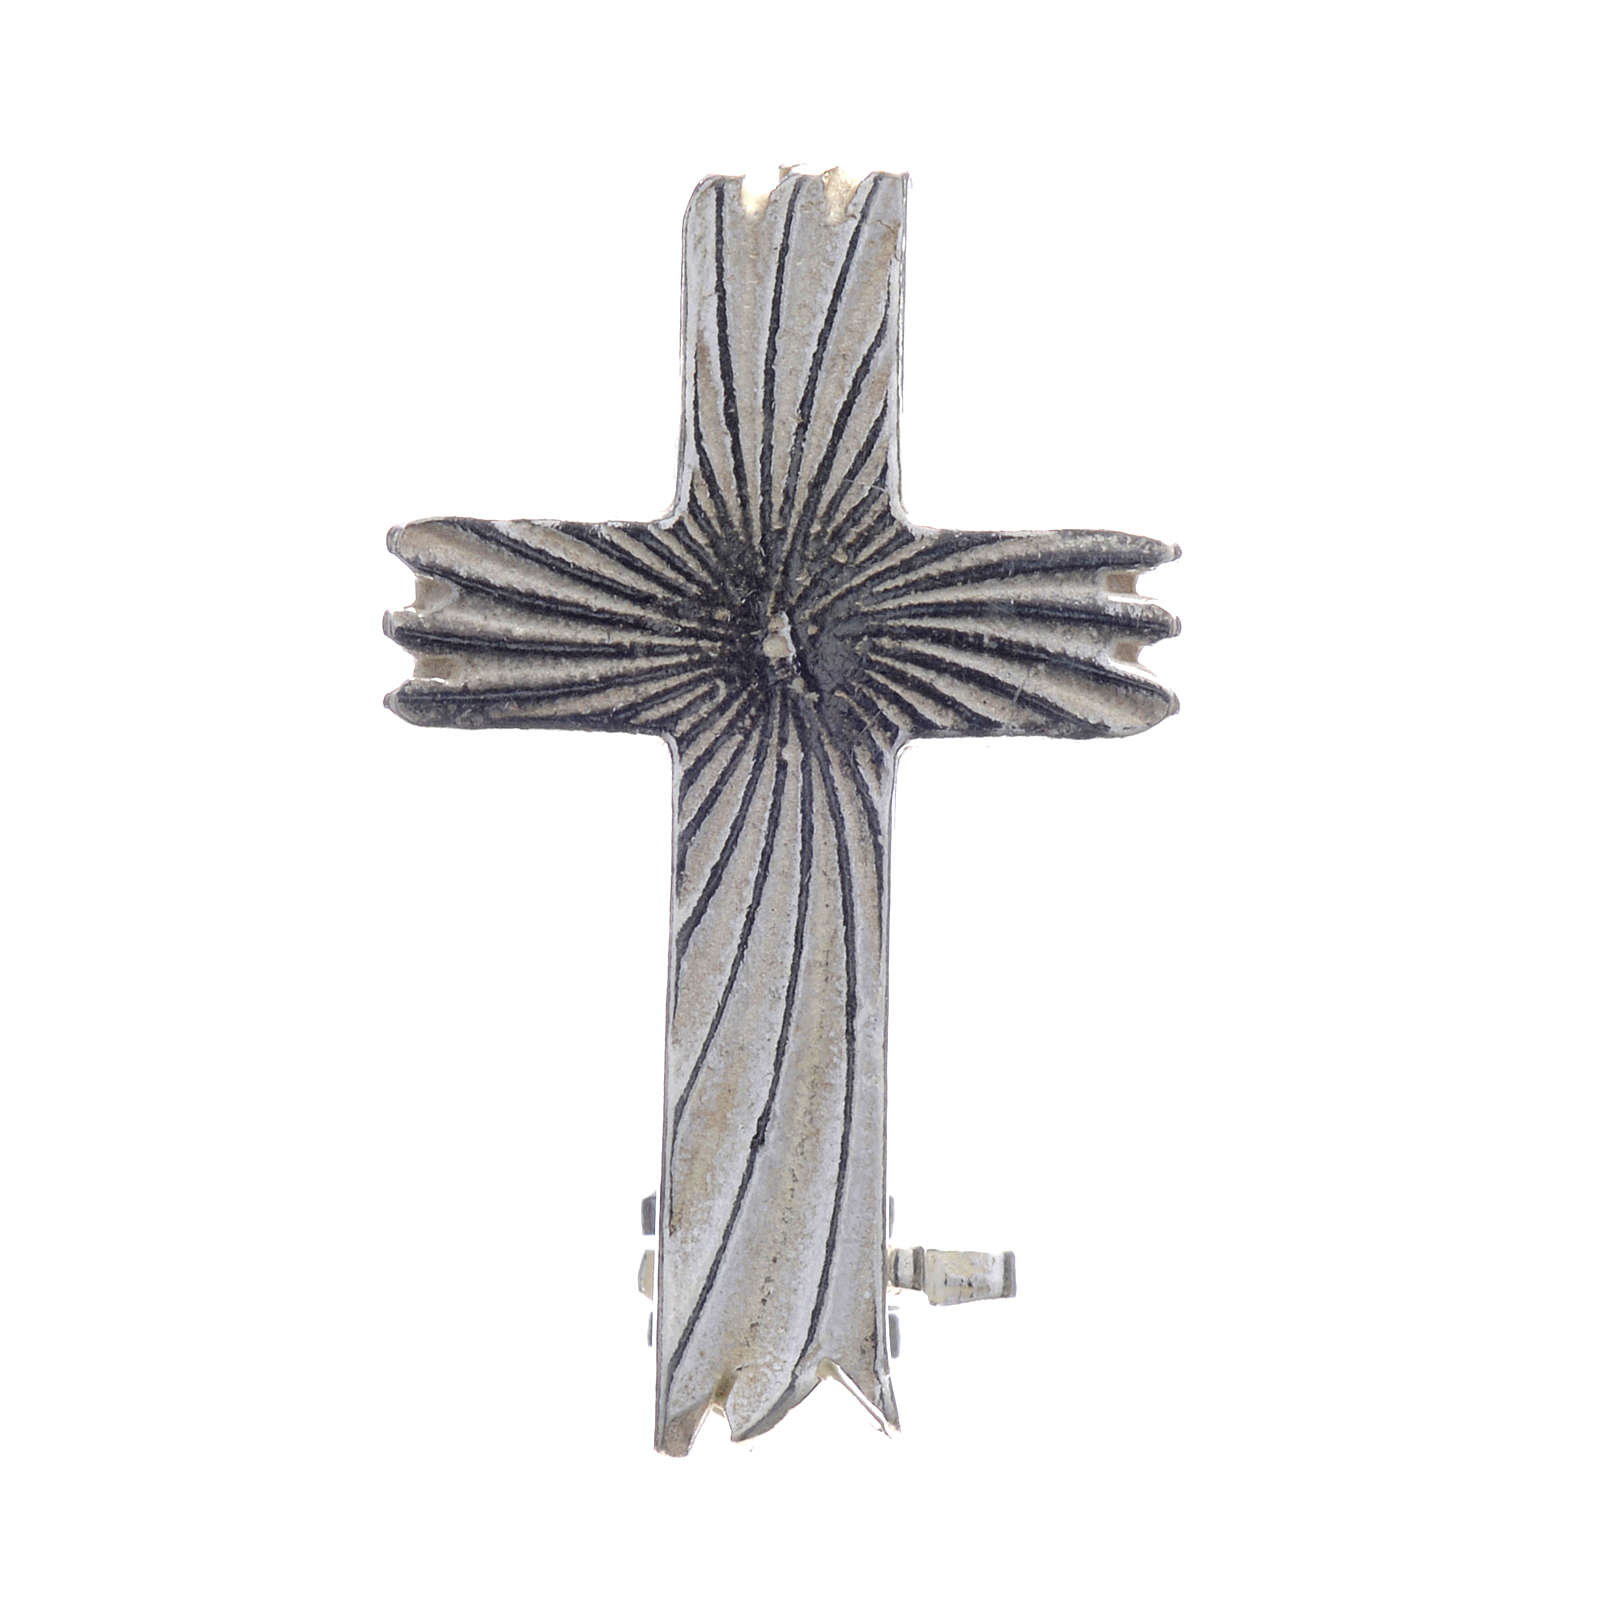 Clergyman knurled cross pin in 800 silver 4